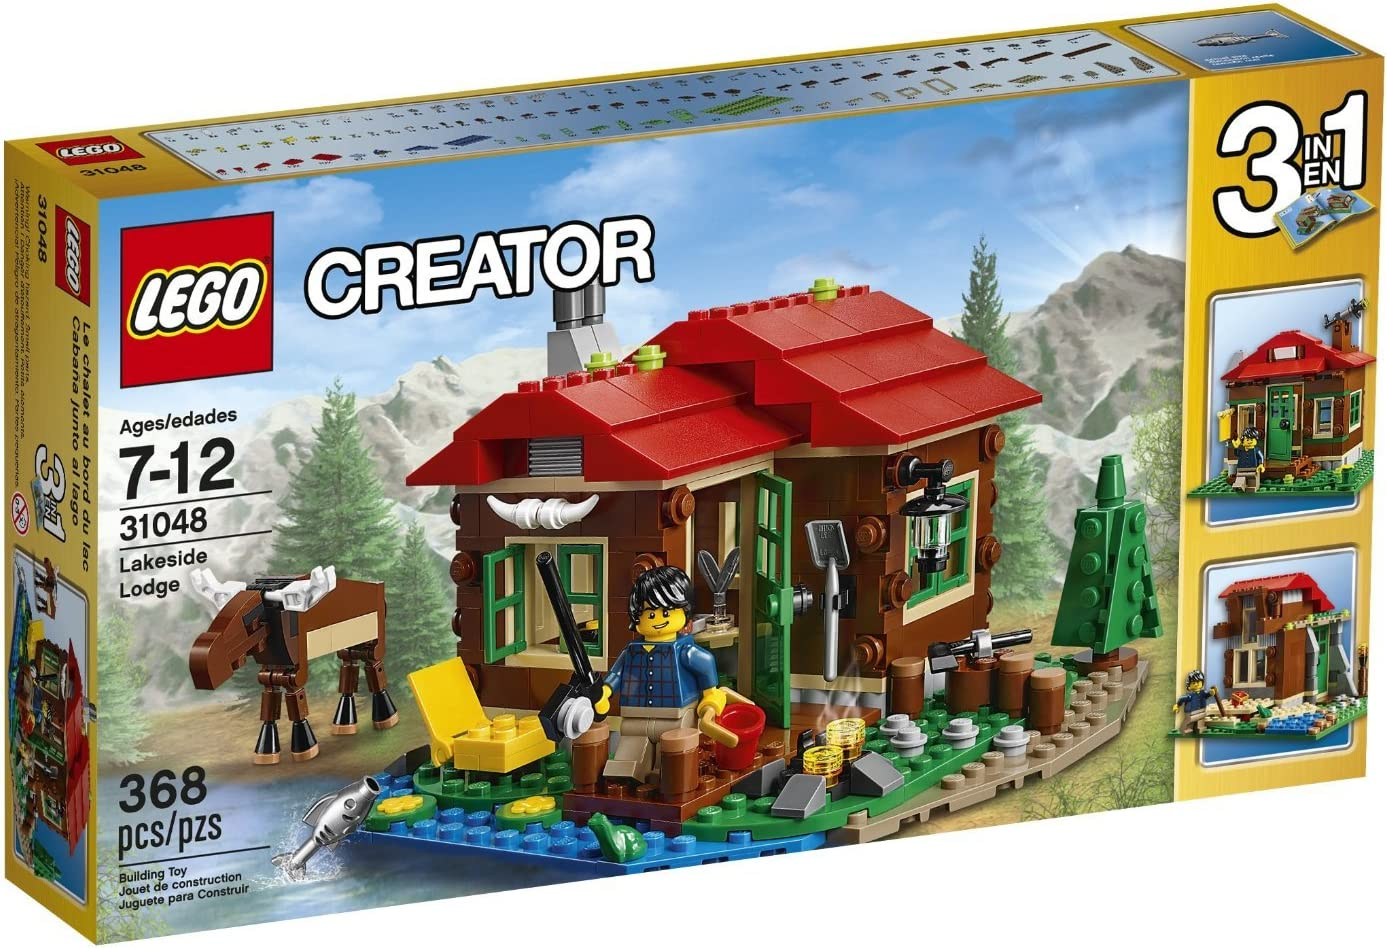 368 Pieces, 3-in-1 Lakeside Lodge Building Set